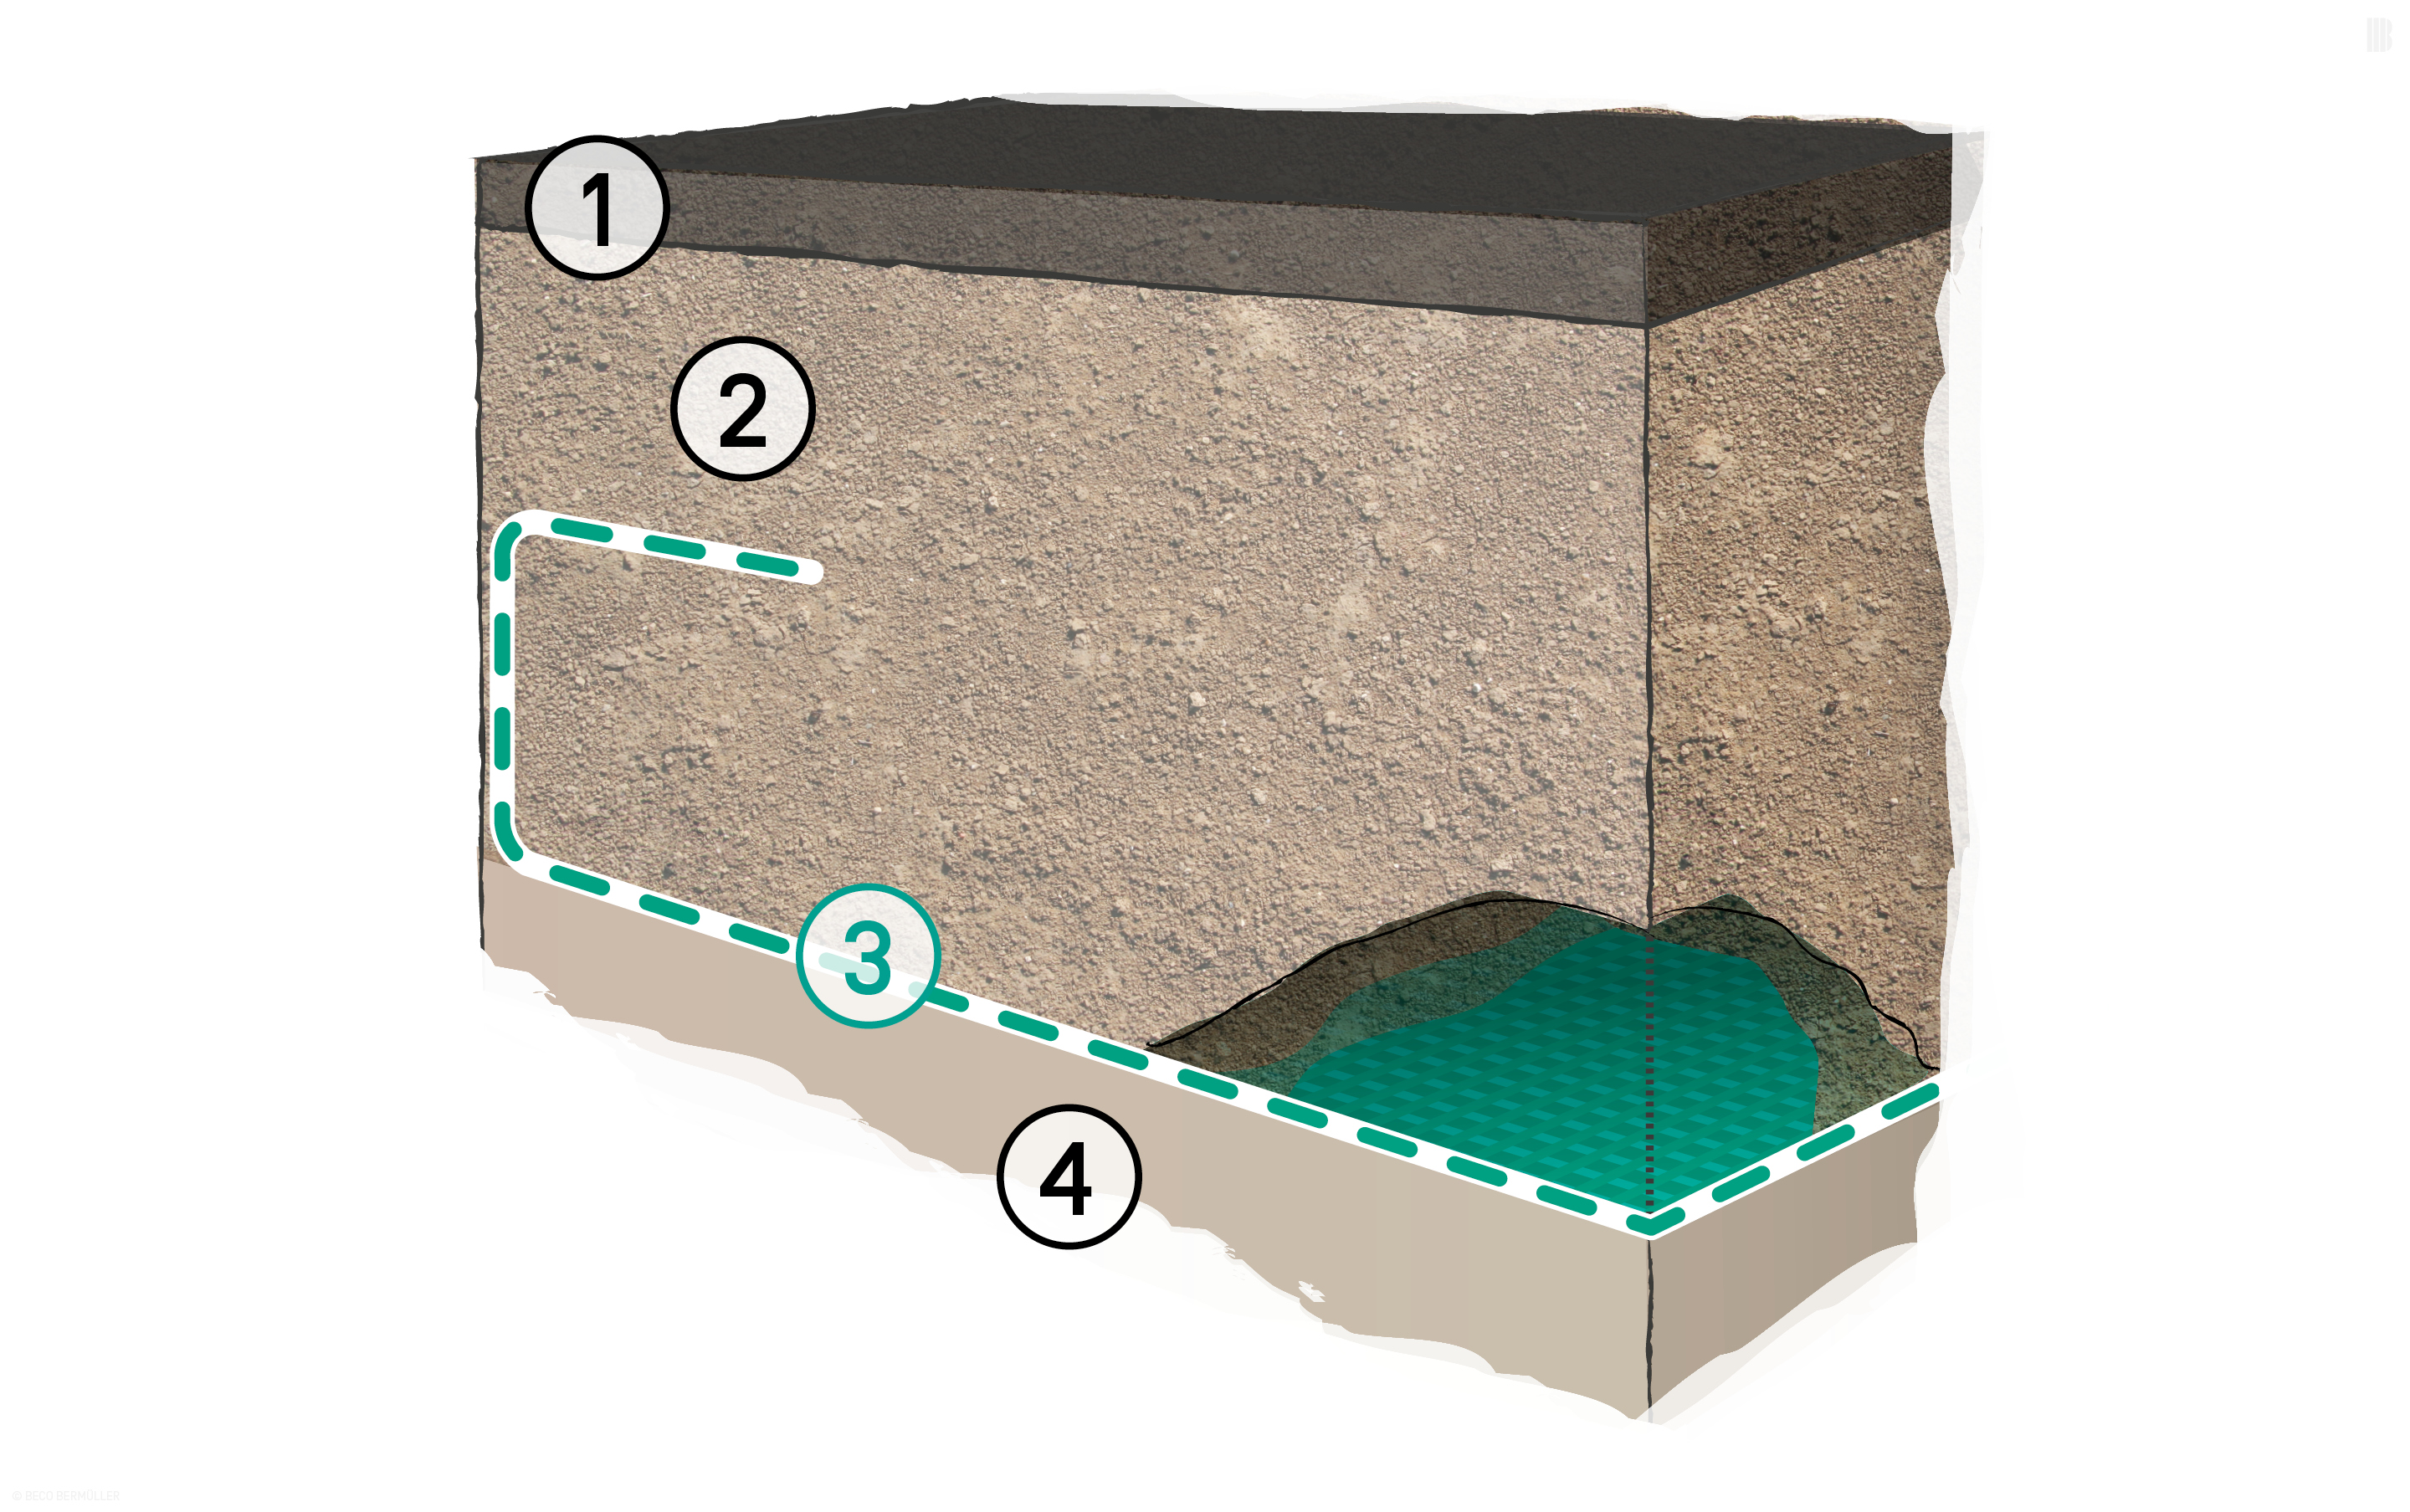 Improved foundation layer without partial soil replacement: 1. Bound upper construction layers | 2. Unbound upper construction layers | 3. BEFORCE Woven Geotextiles | 4. Subsoil with poor load-bearing capacity